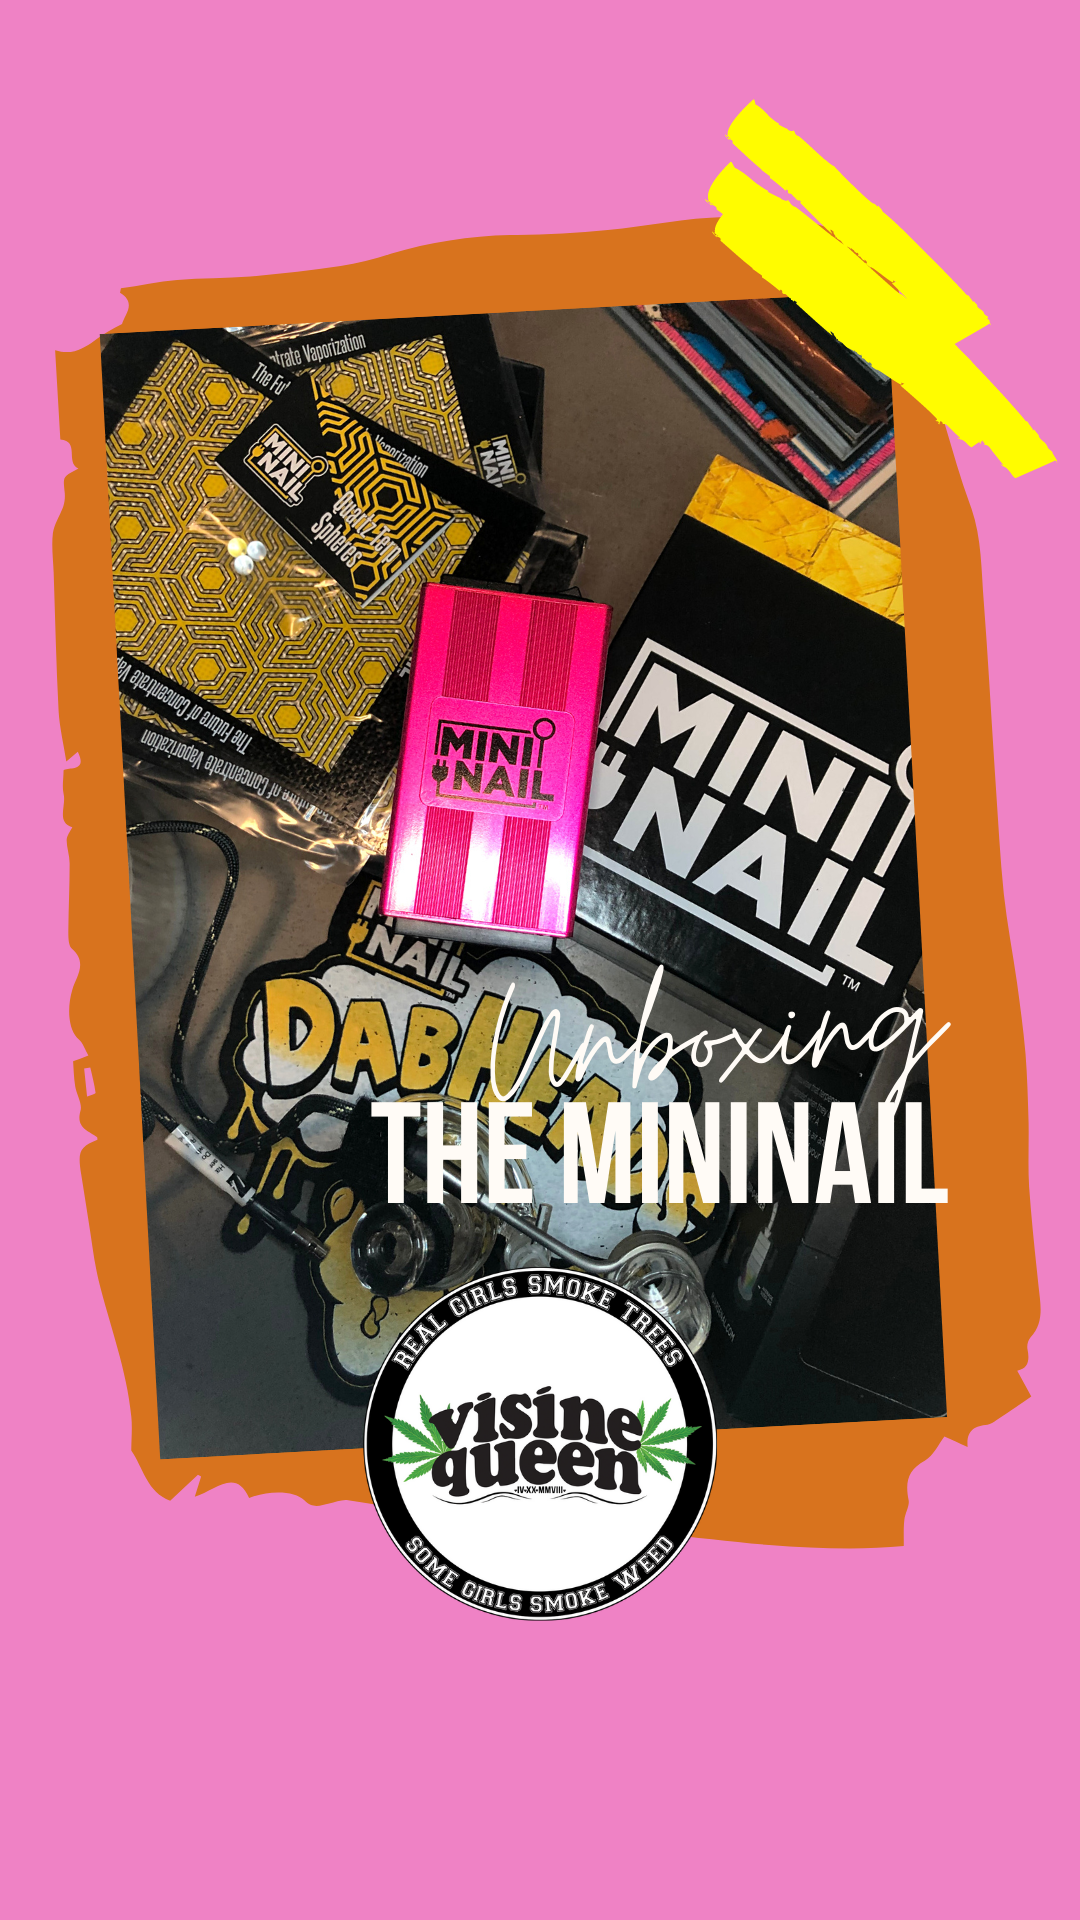 Unboxing TheMiniNail: Nail for Dabbing